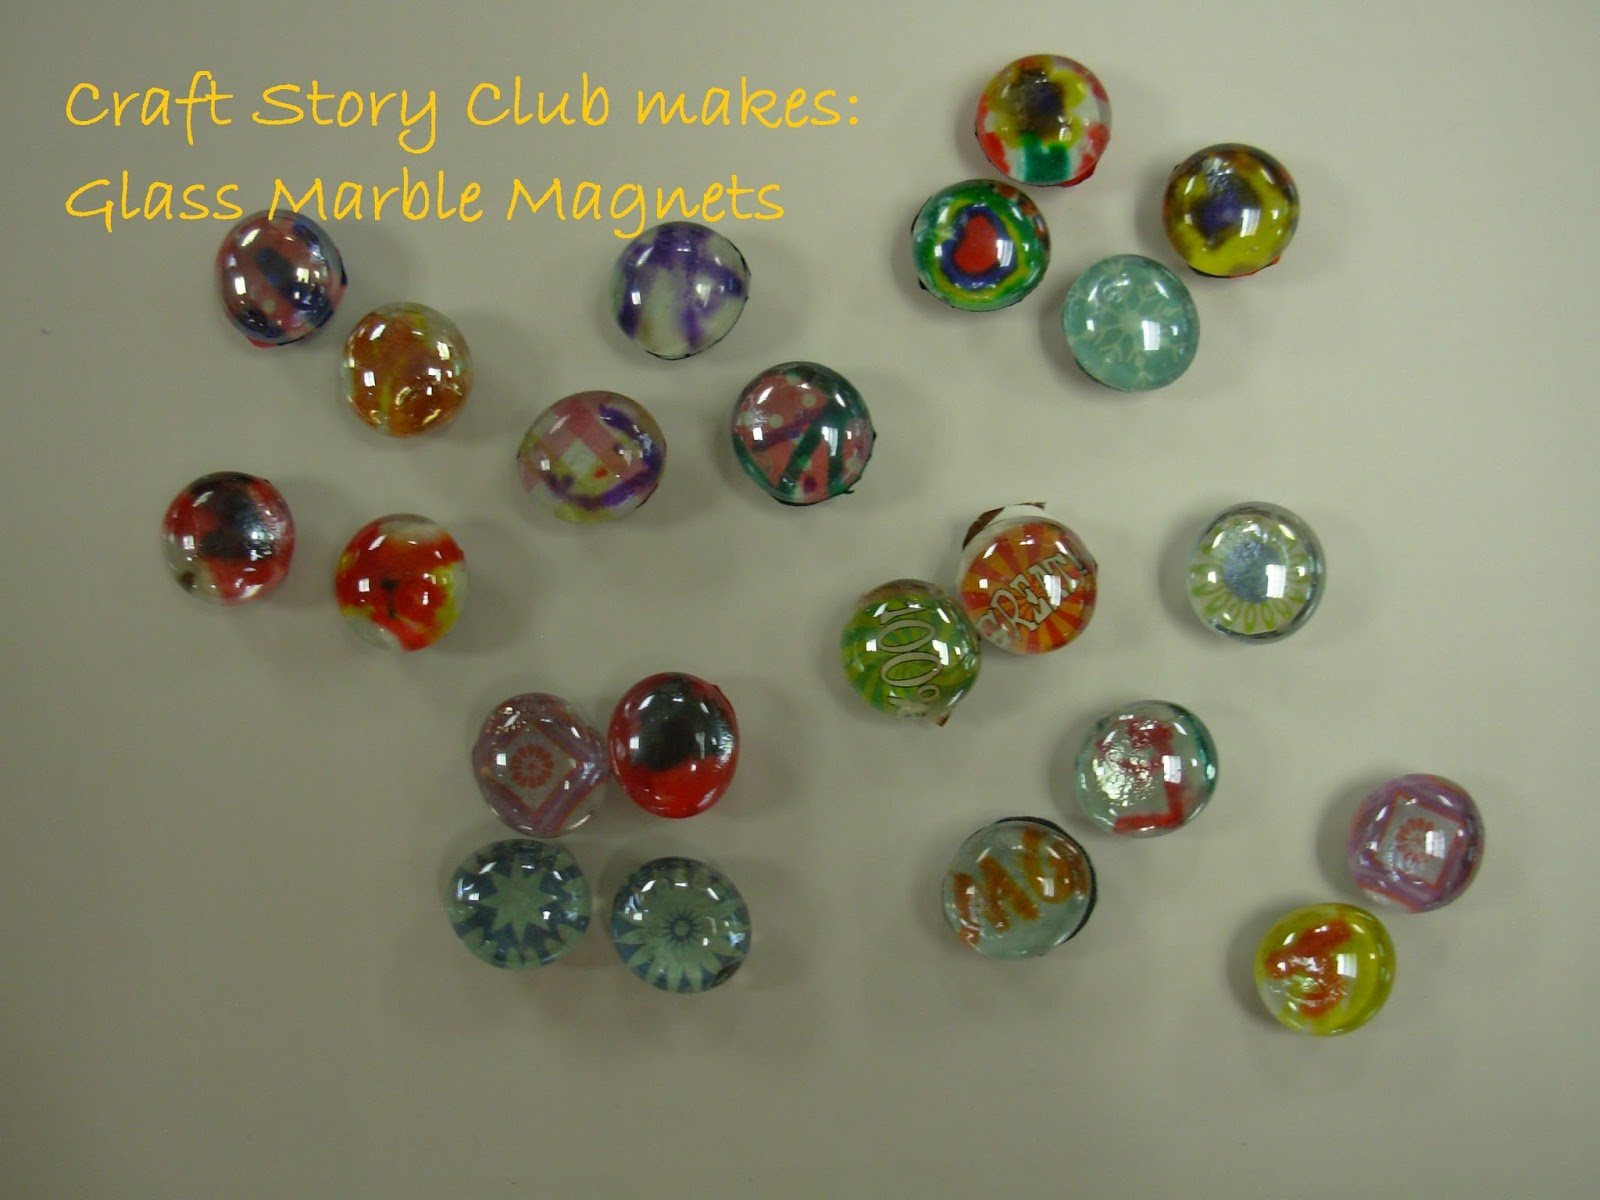 Flat glass marbles crafts - Flat Glass Marble Crafts Craft Story Club Glass Marble Magnets I Can T Remember Why